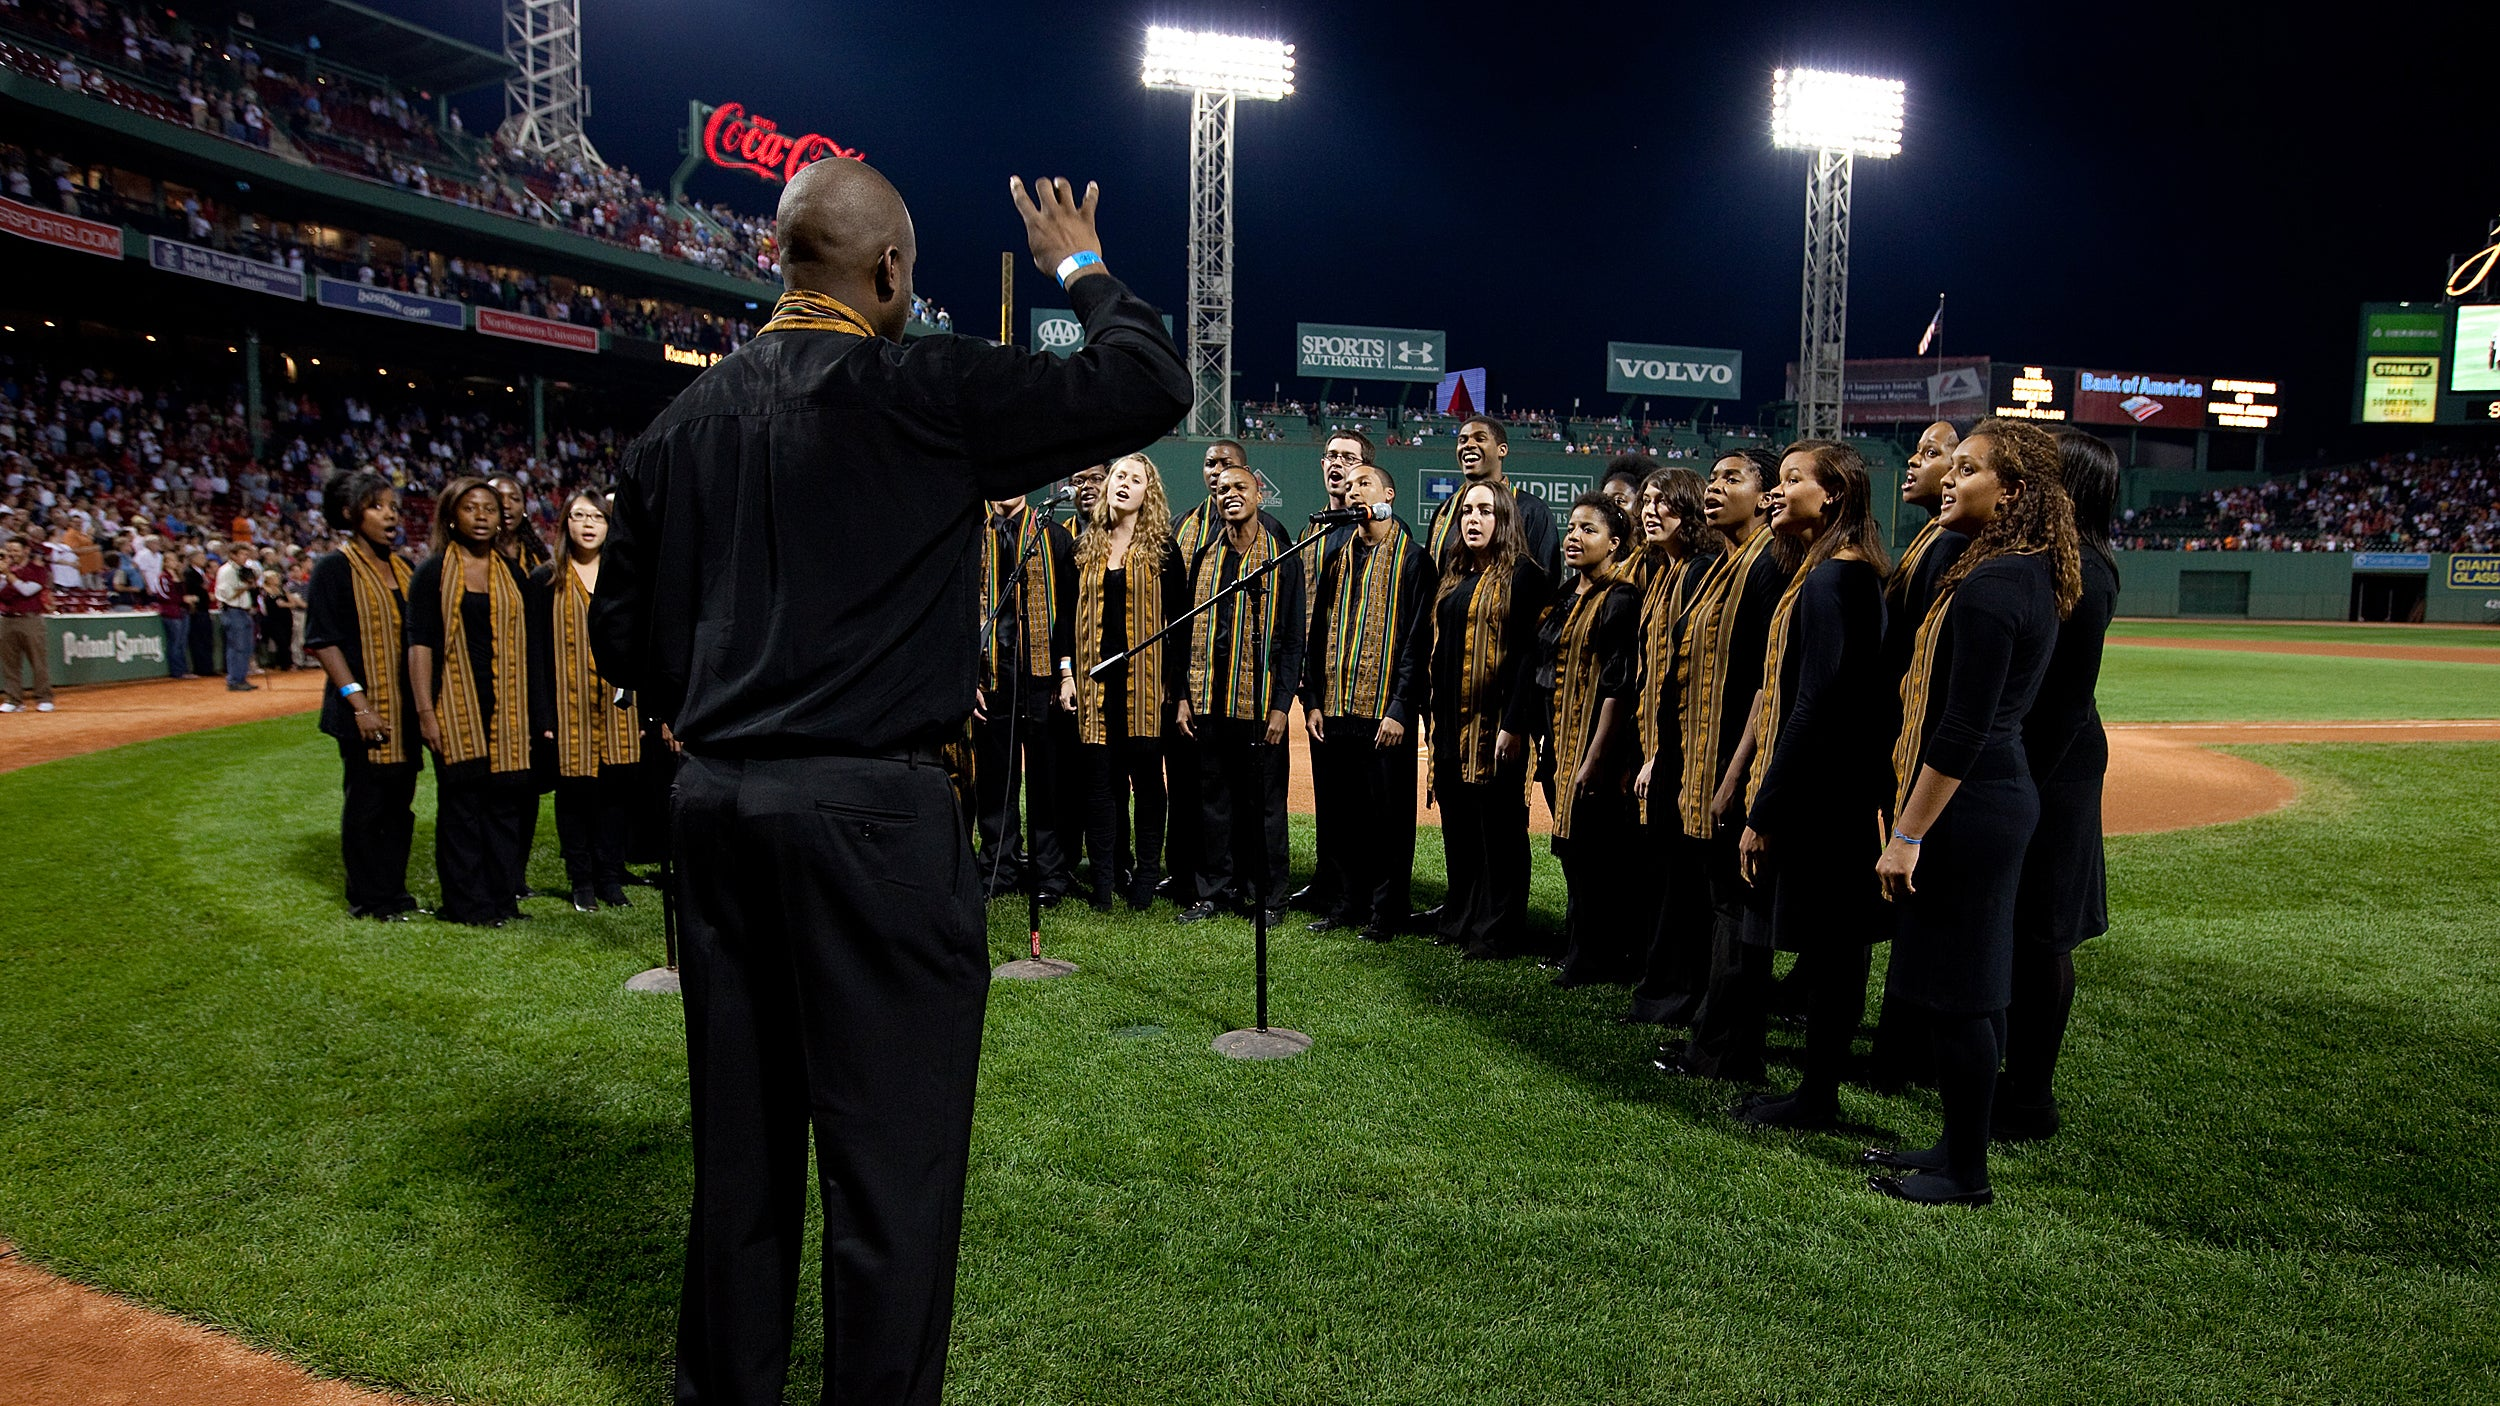 Kuumba Singers at Fenway.